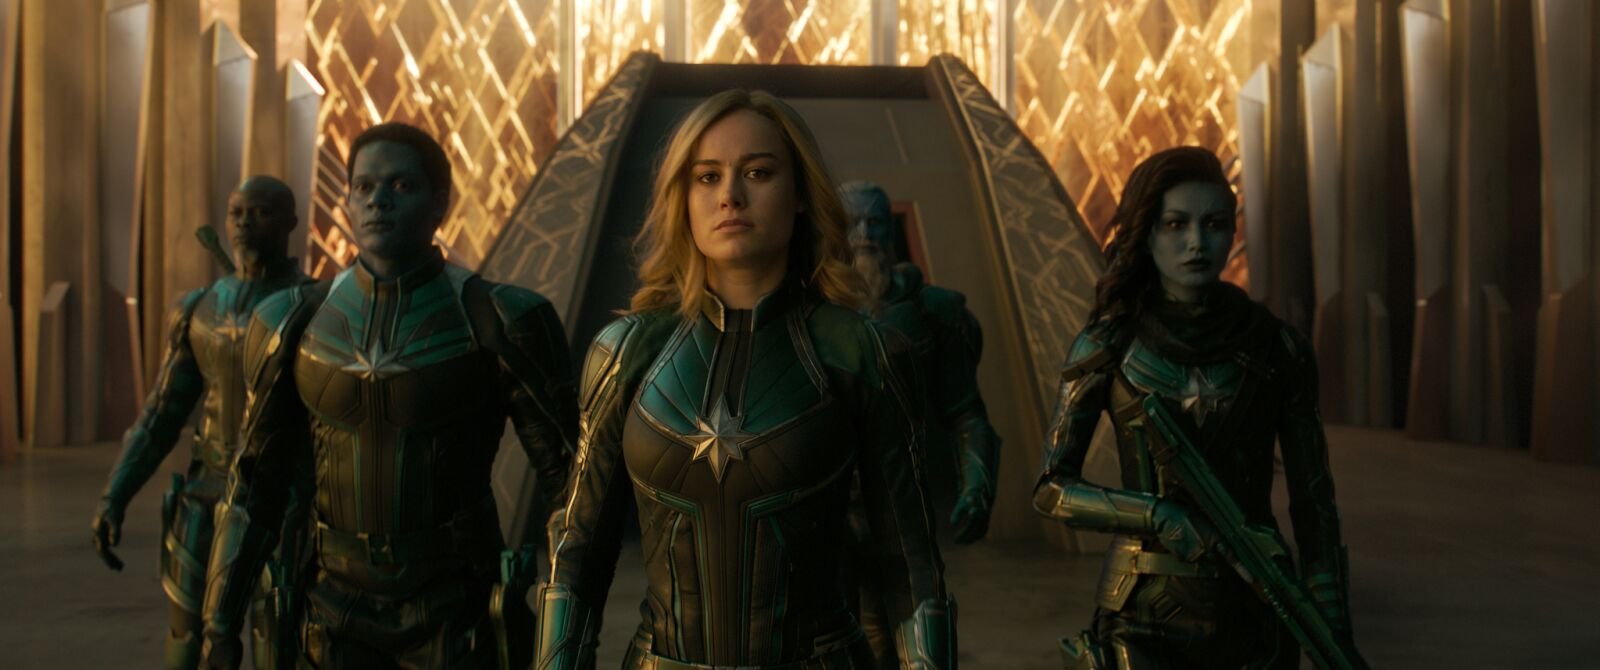 Captain Marvel: Deleted scene shows Carol mentoring young Starforce students